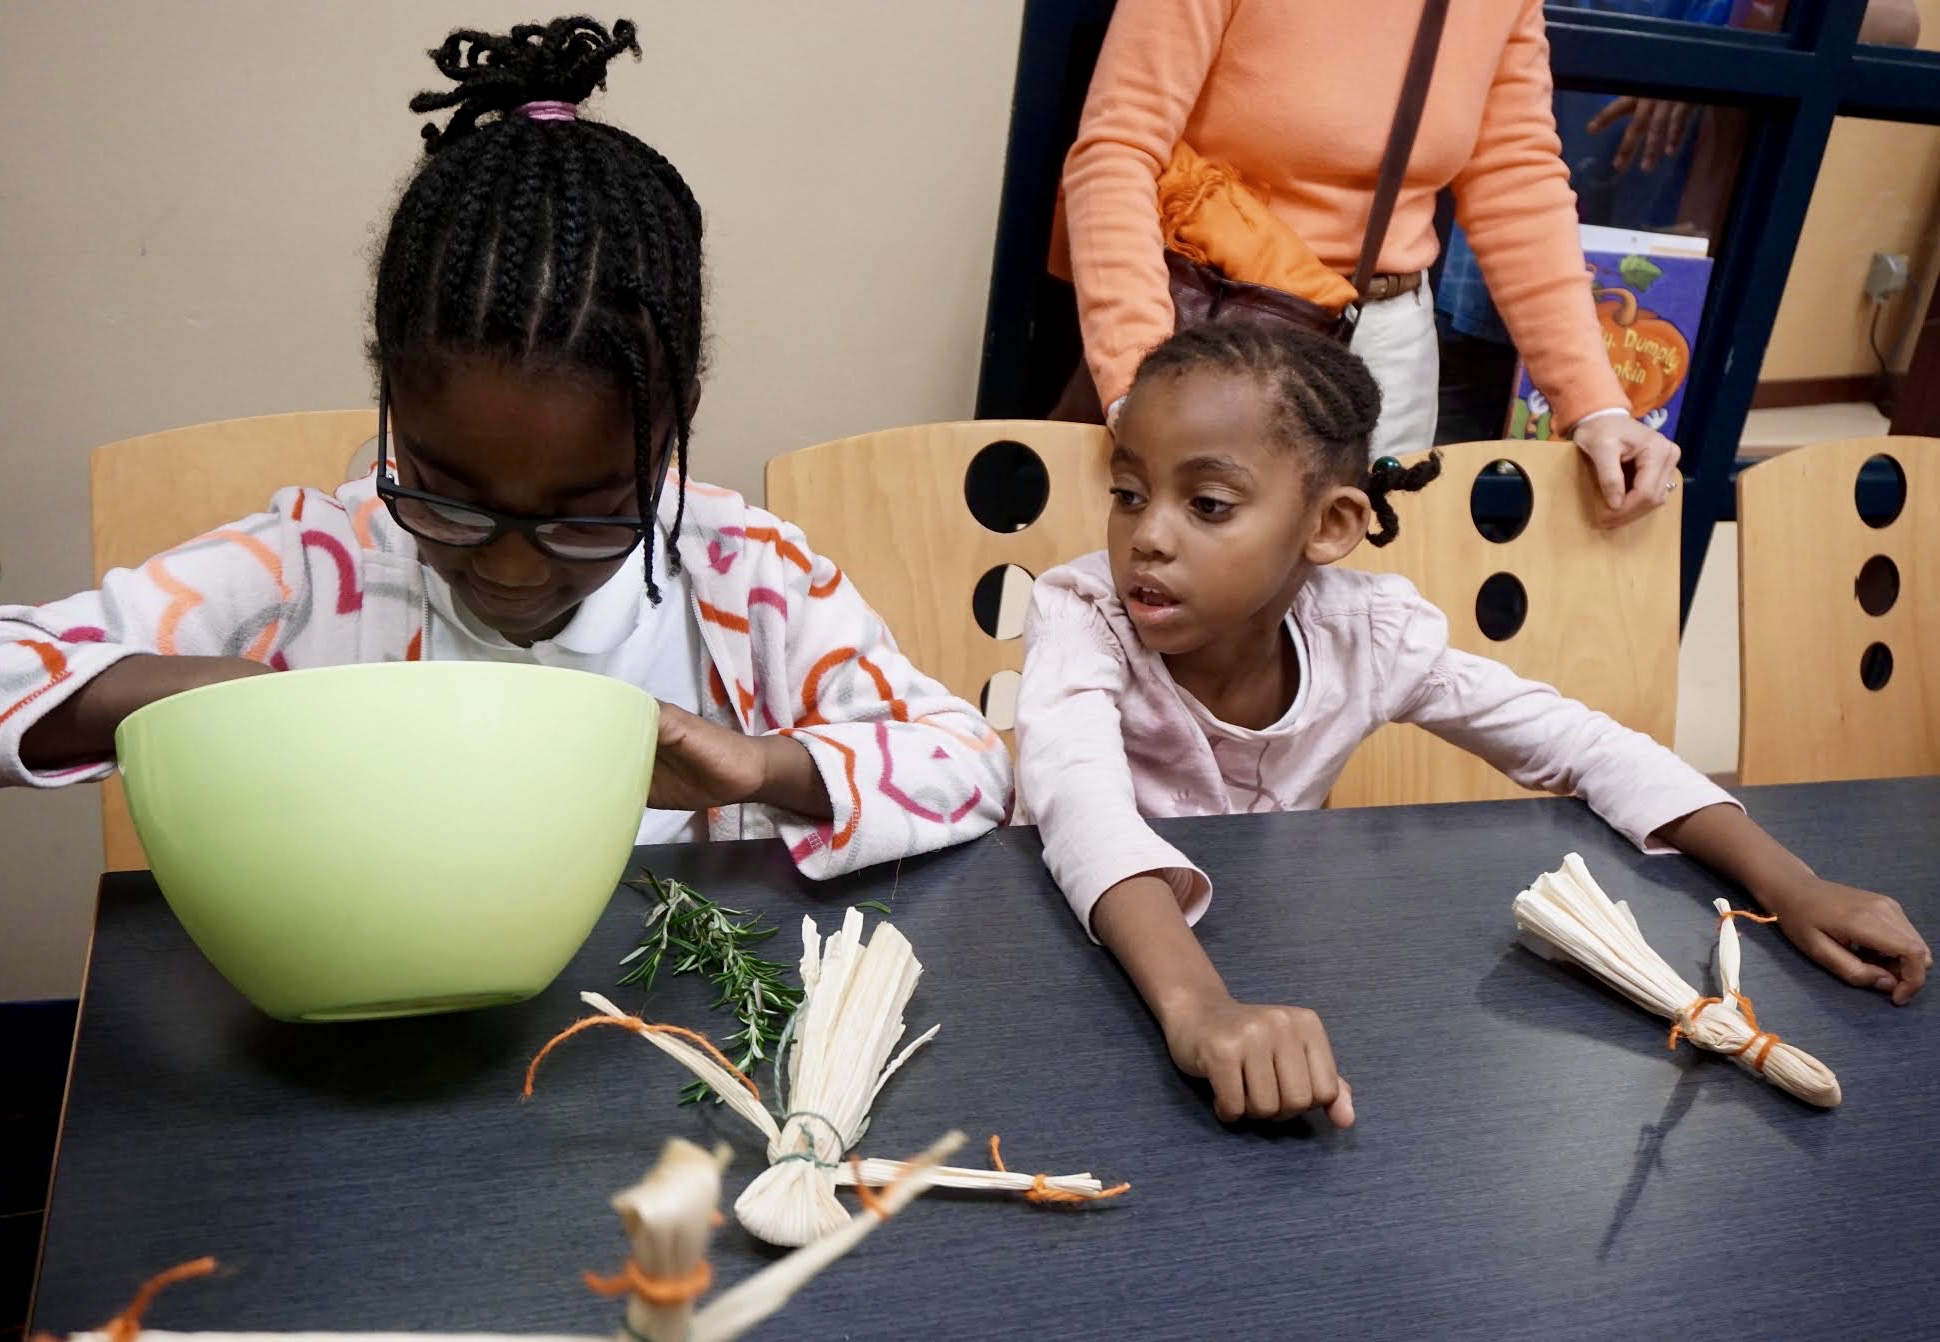 Photo by Eilif Ronning, Media Intern Children inspect the rainbow popcorn kernels they are about to eat.